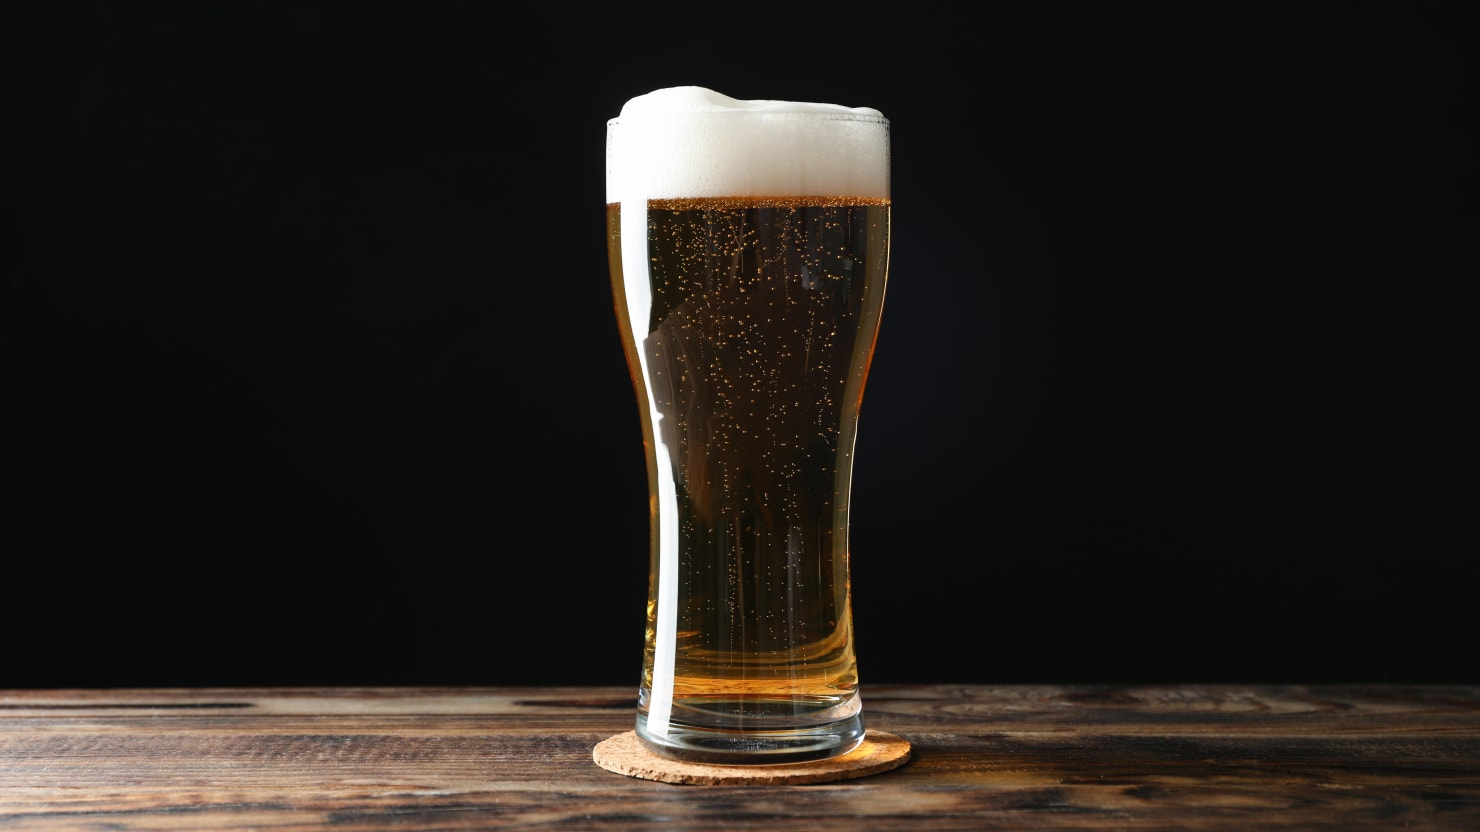 Beer Lovers: Having a Tap at Home Is Easier Than You Think